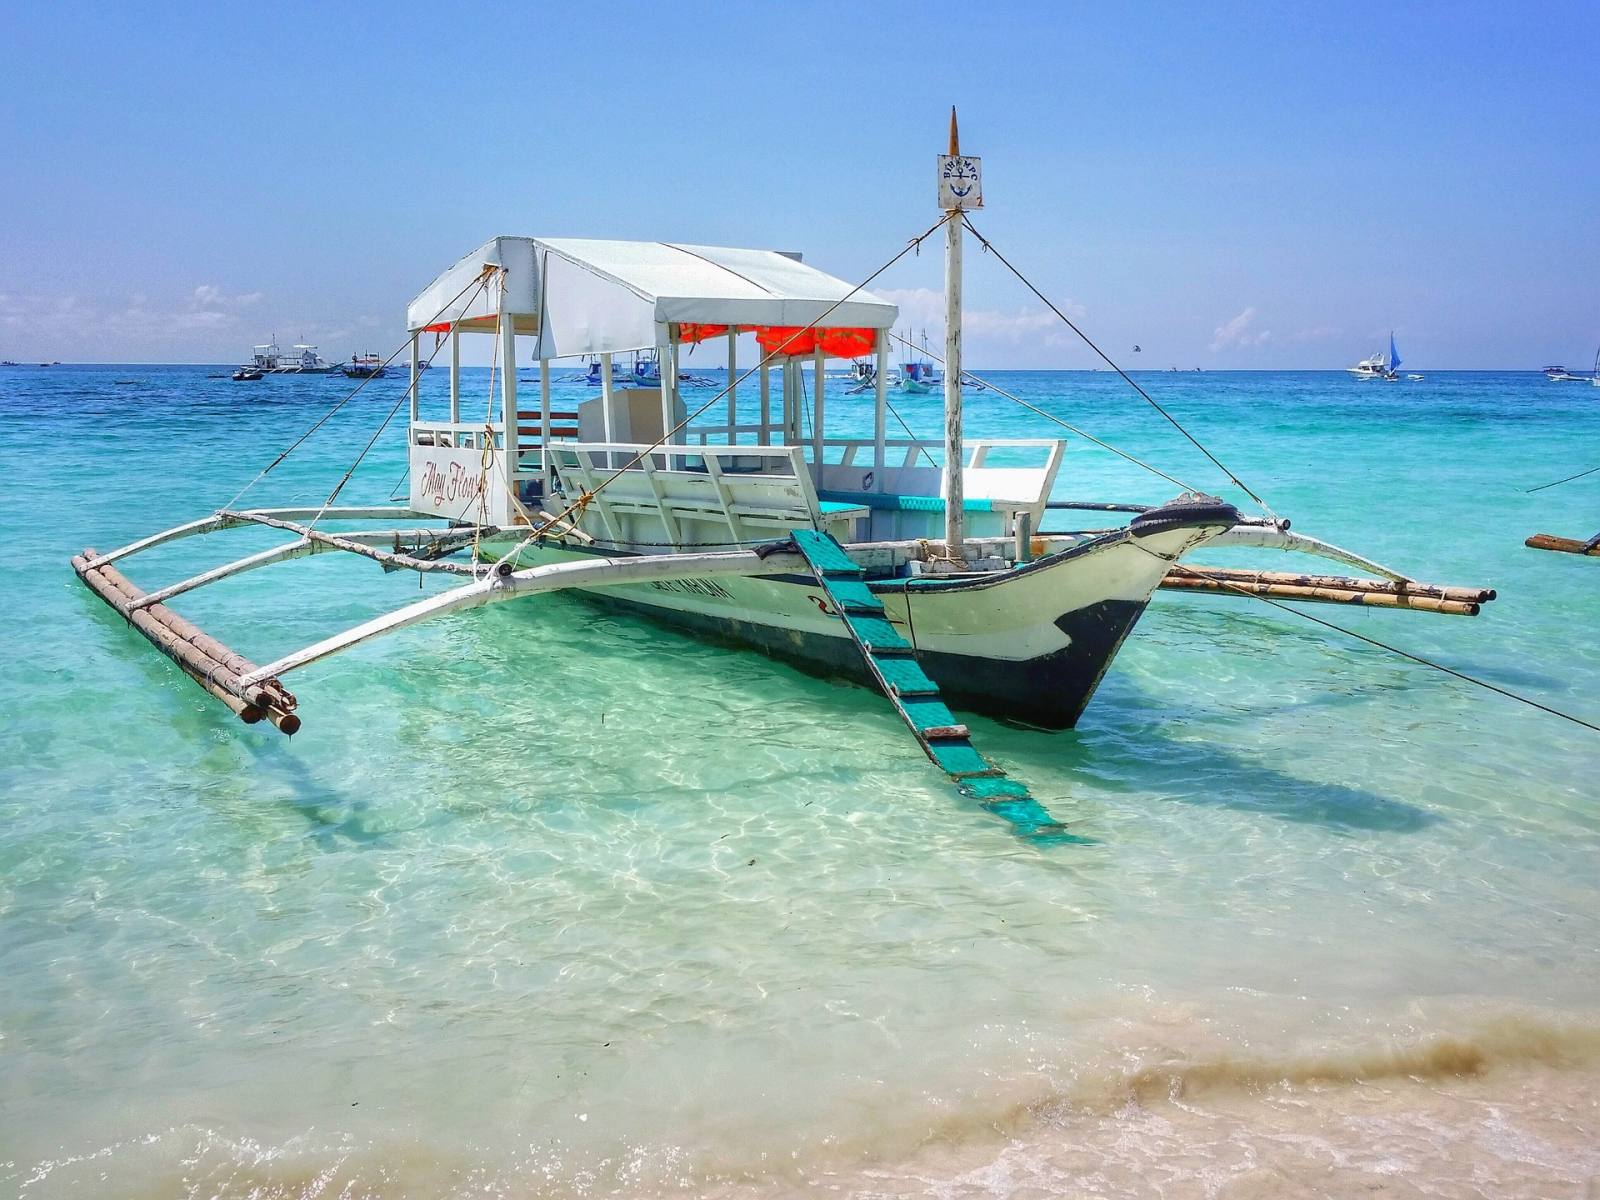 5 places to visit with the family in the Philippines